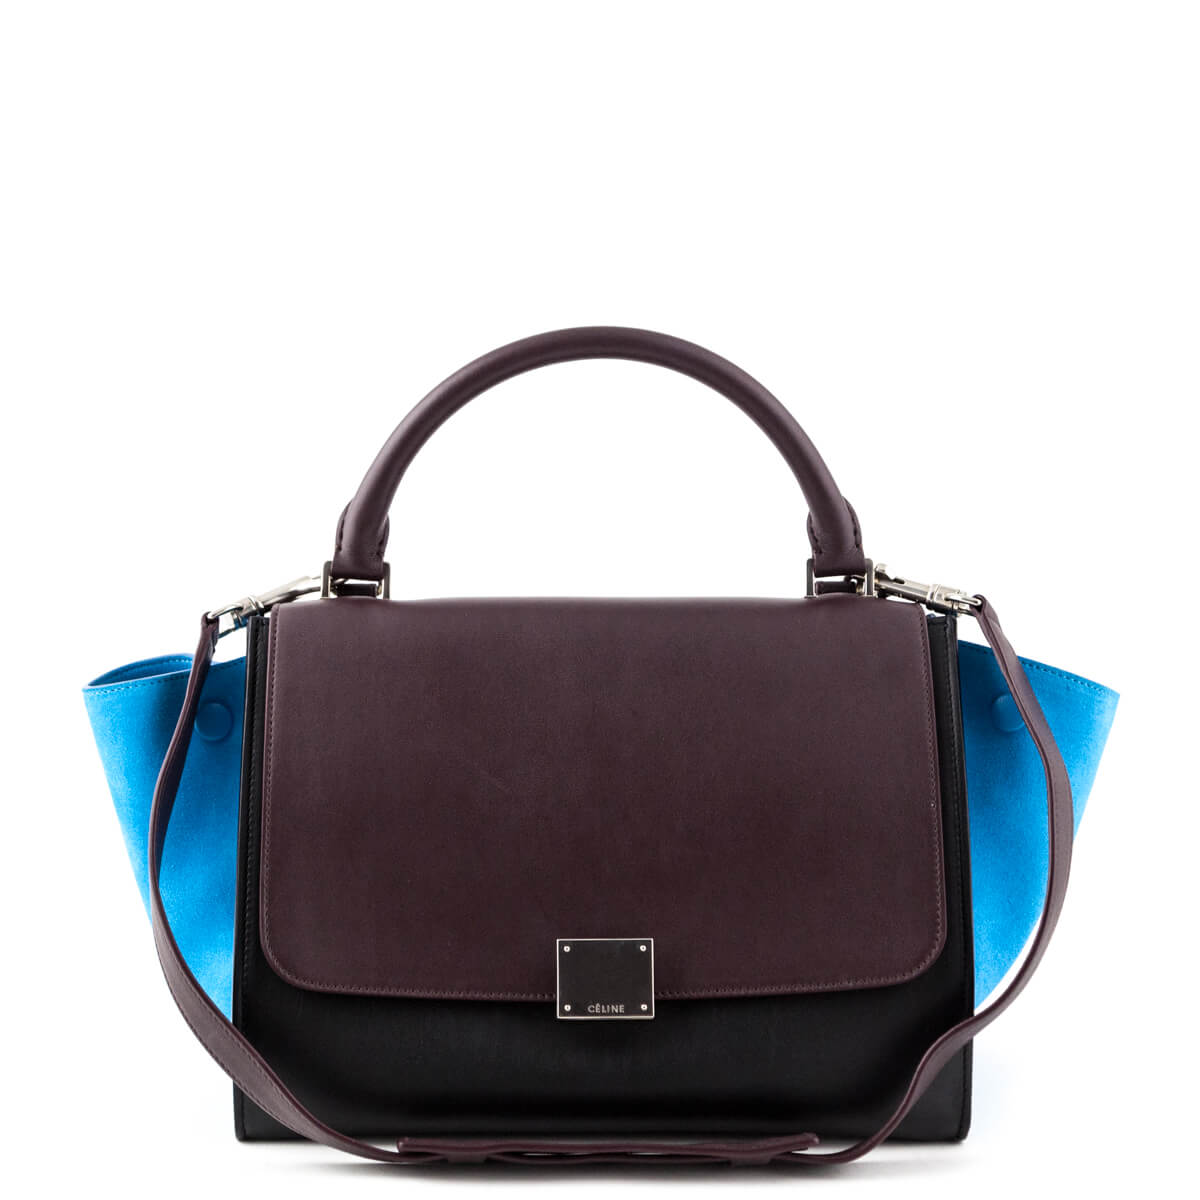 Celine Tricolor Calfskin and Suede Small Trapeze Bag - LOVE that BAG -  Preowned Authentic Designer ... 485aed9ff1a3d